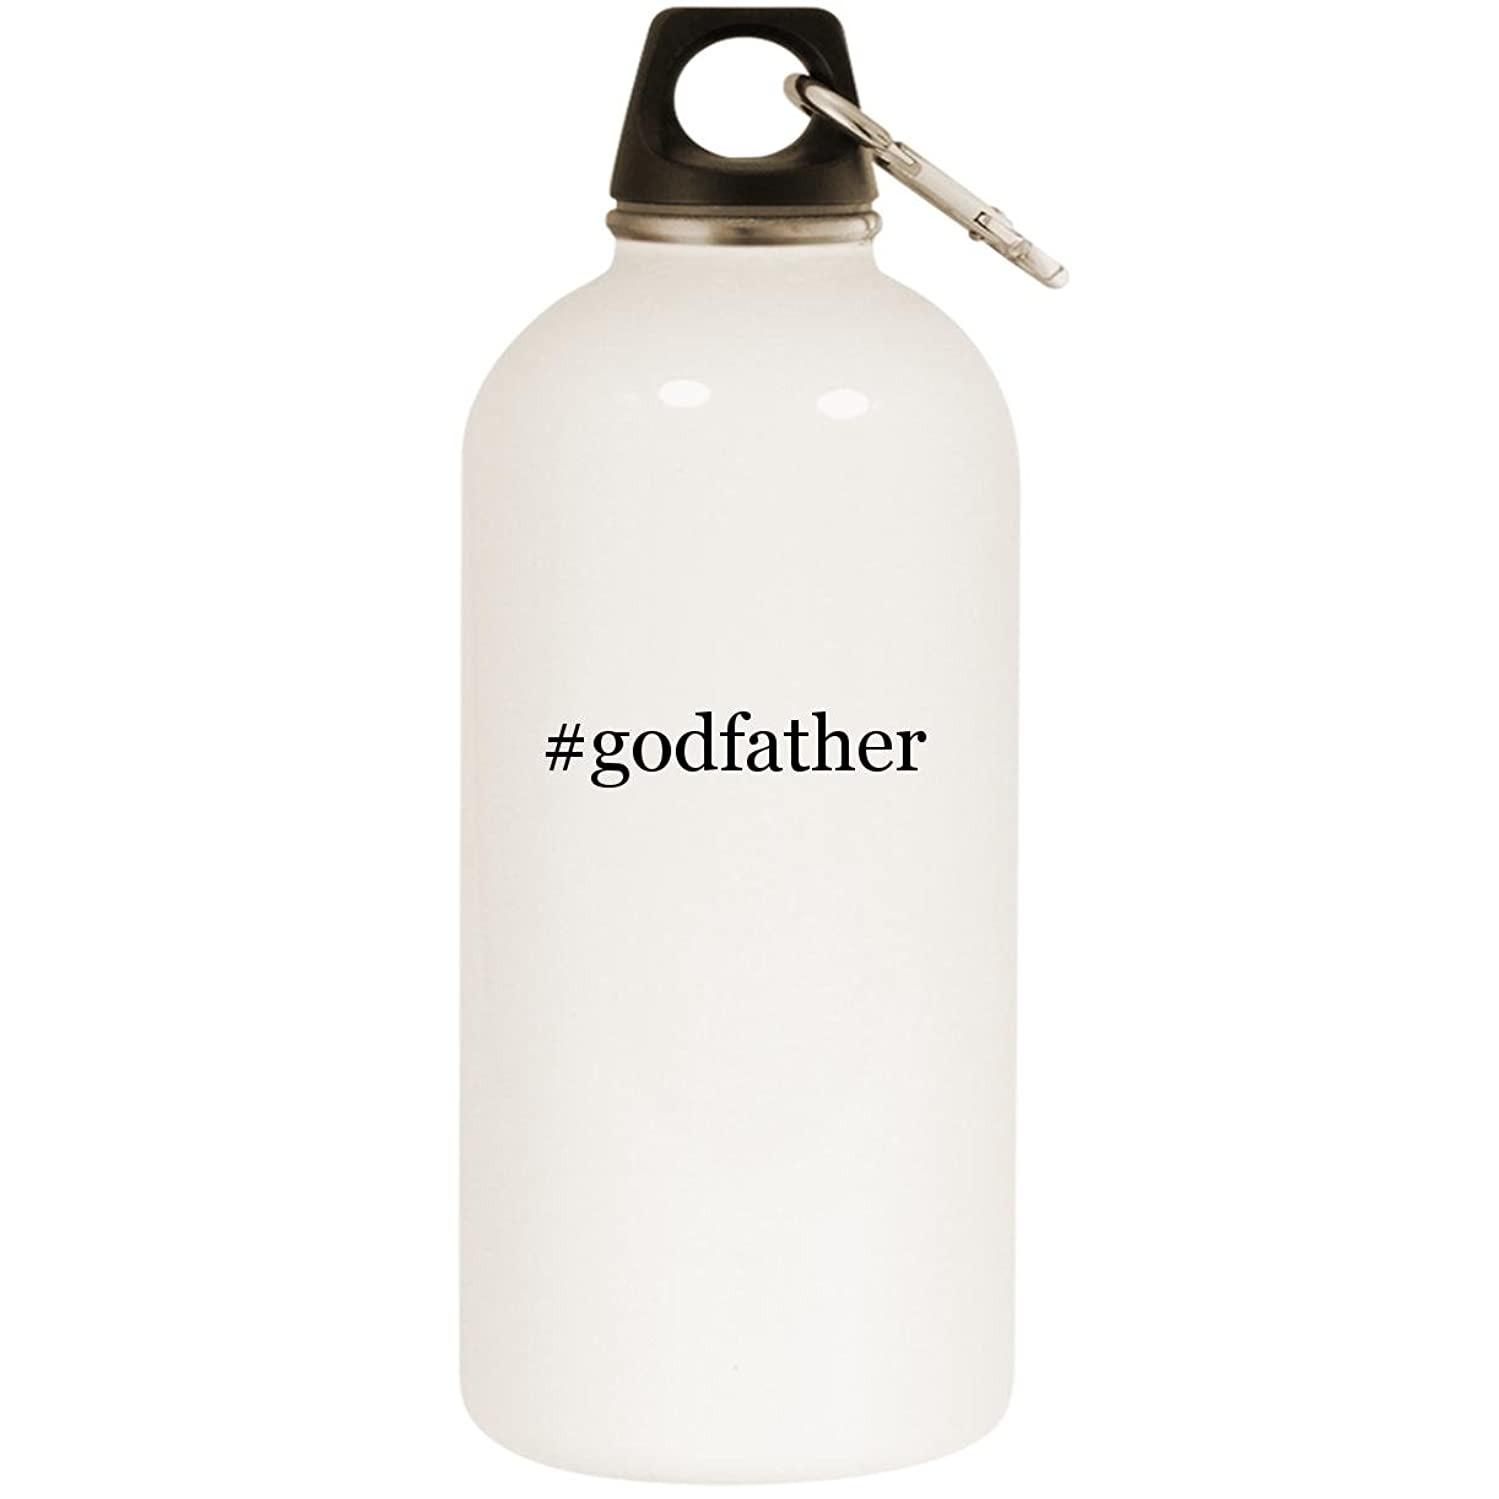 Molandra Products #Godfather - White Hashtag 20oz Stainless Steel Water Bottle with Carabiner